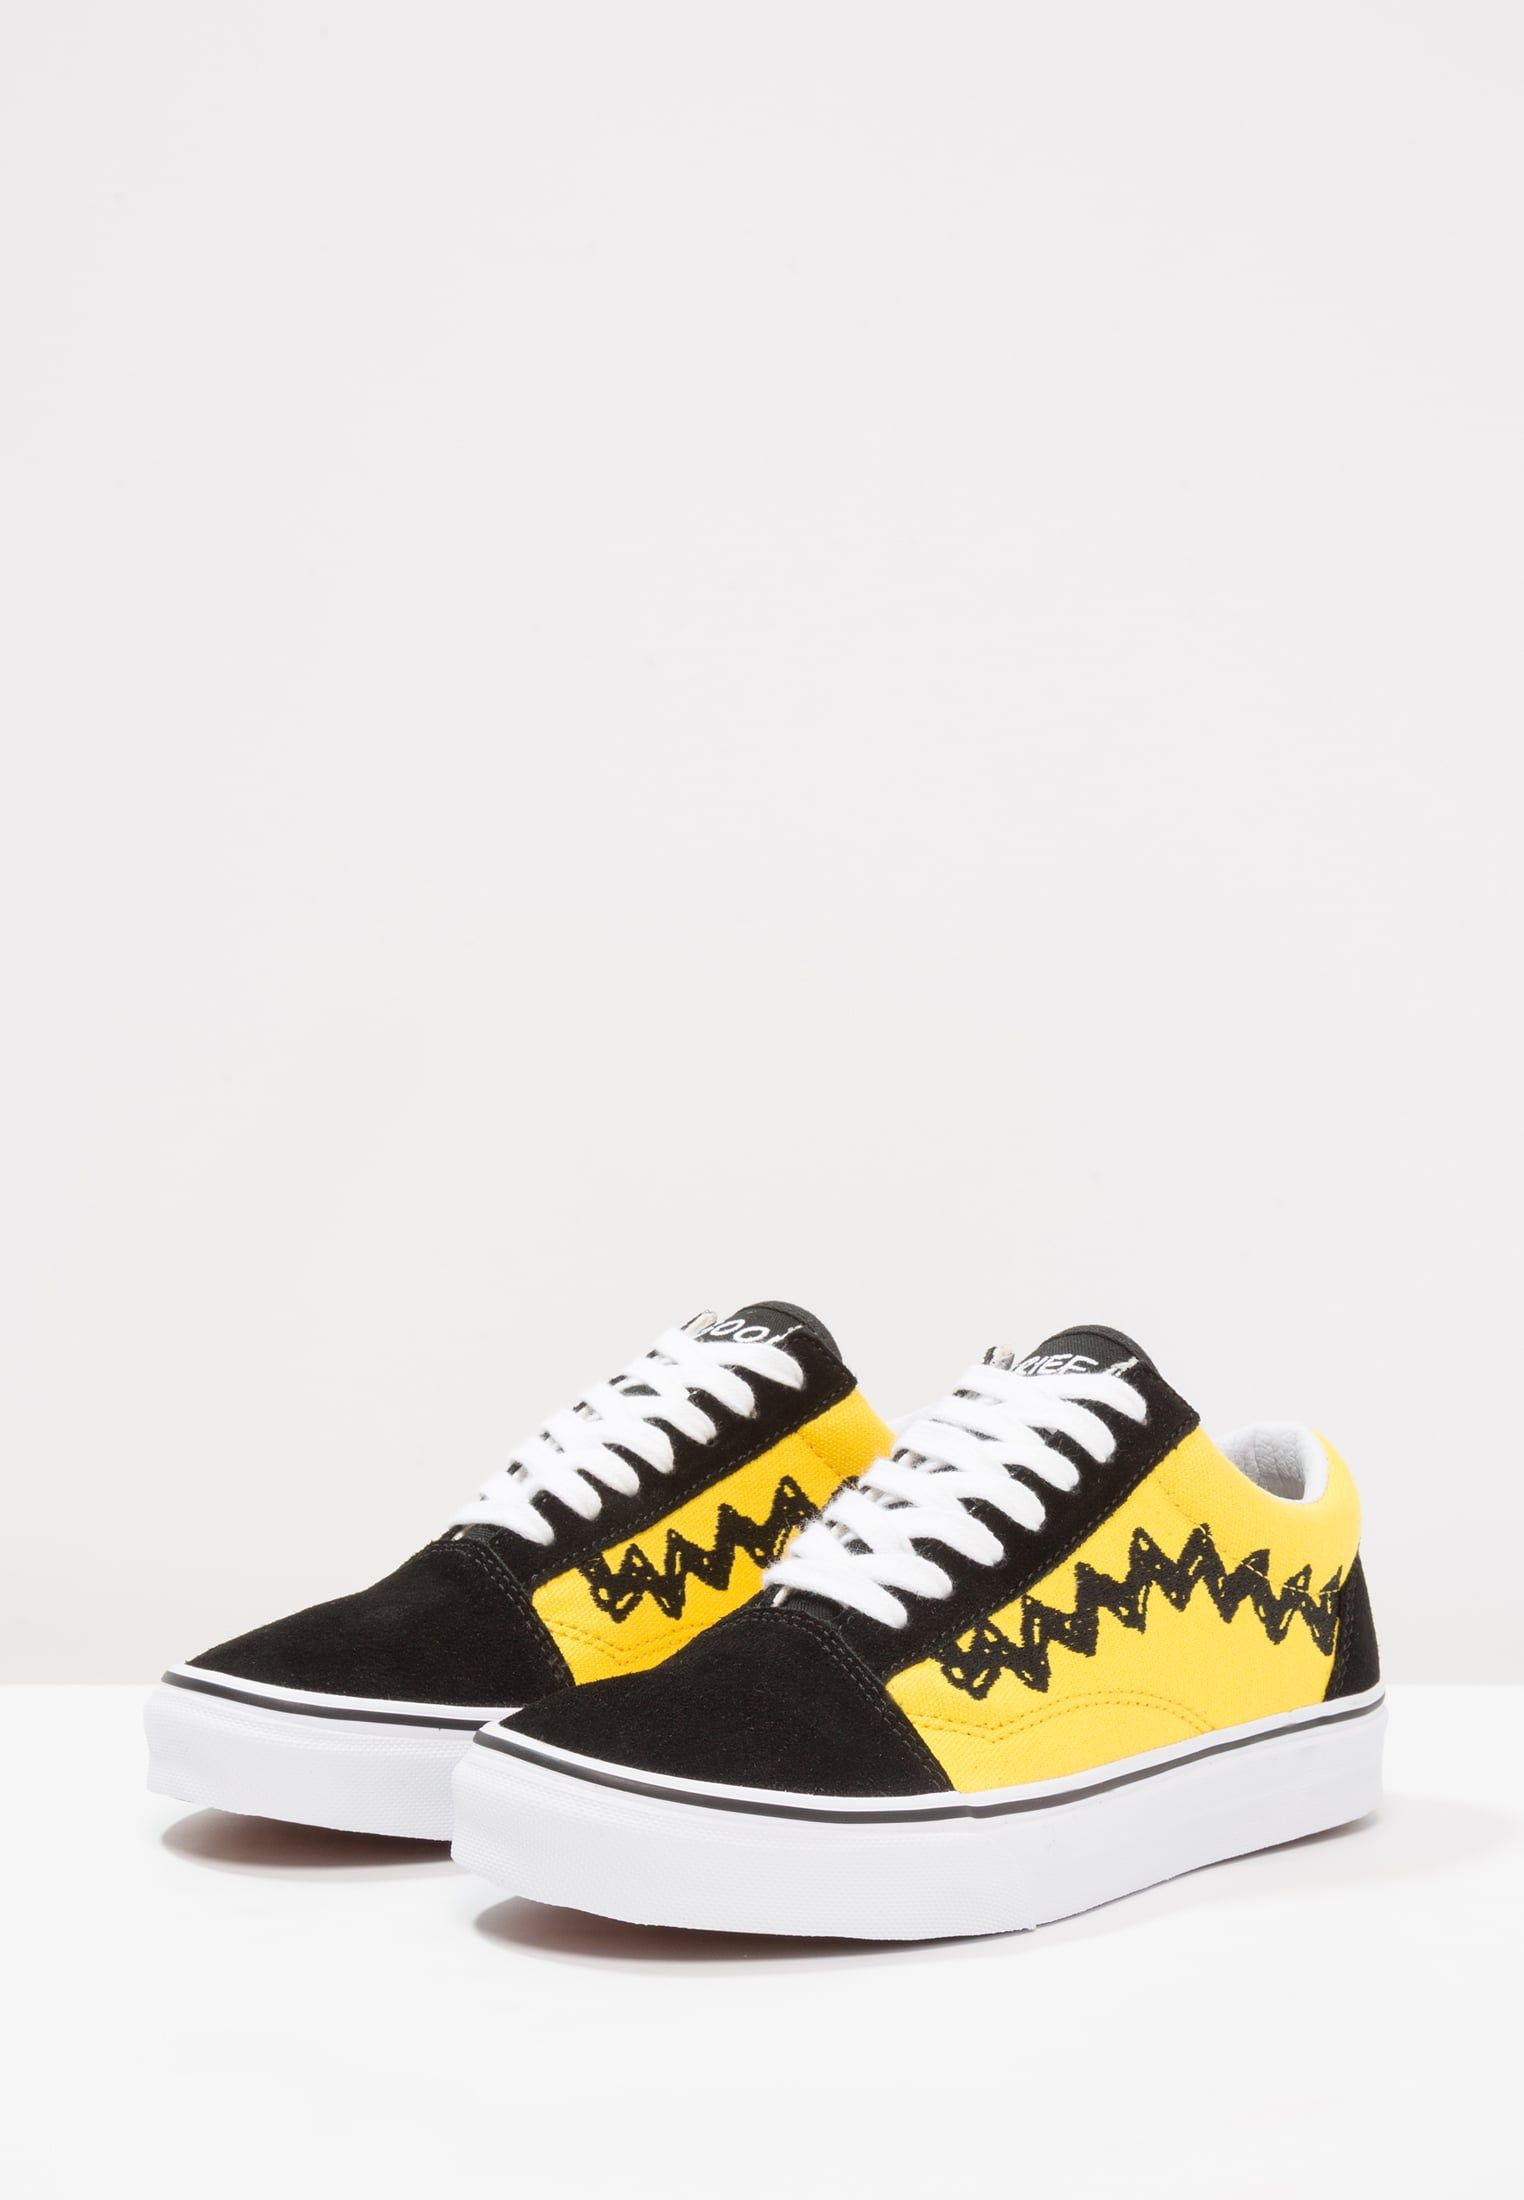 999f4ac5df Vans PEANUTS UA OLD SKOOL - Sneakers basse - black - Zalando.it ...